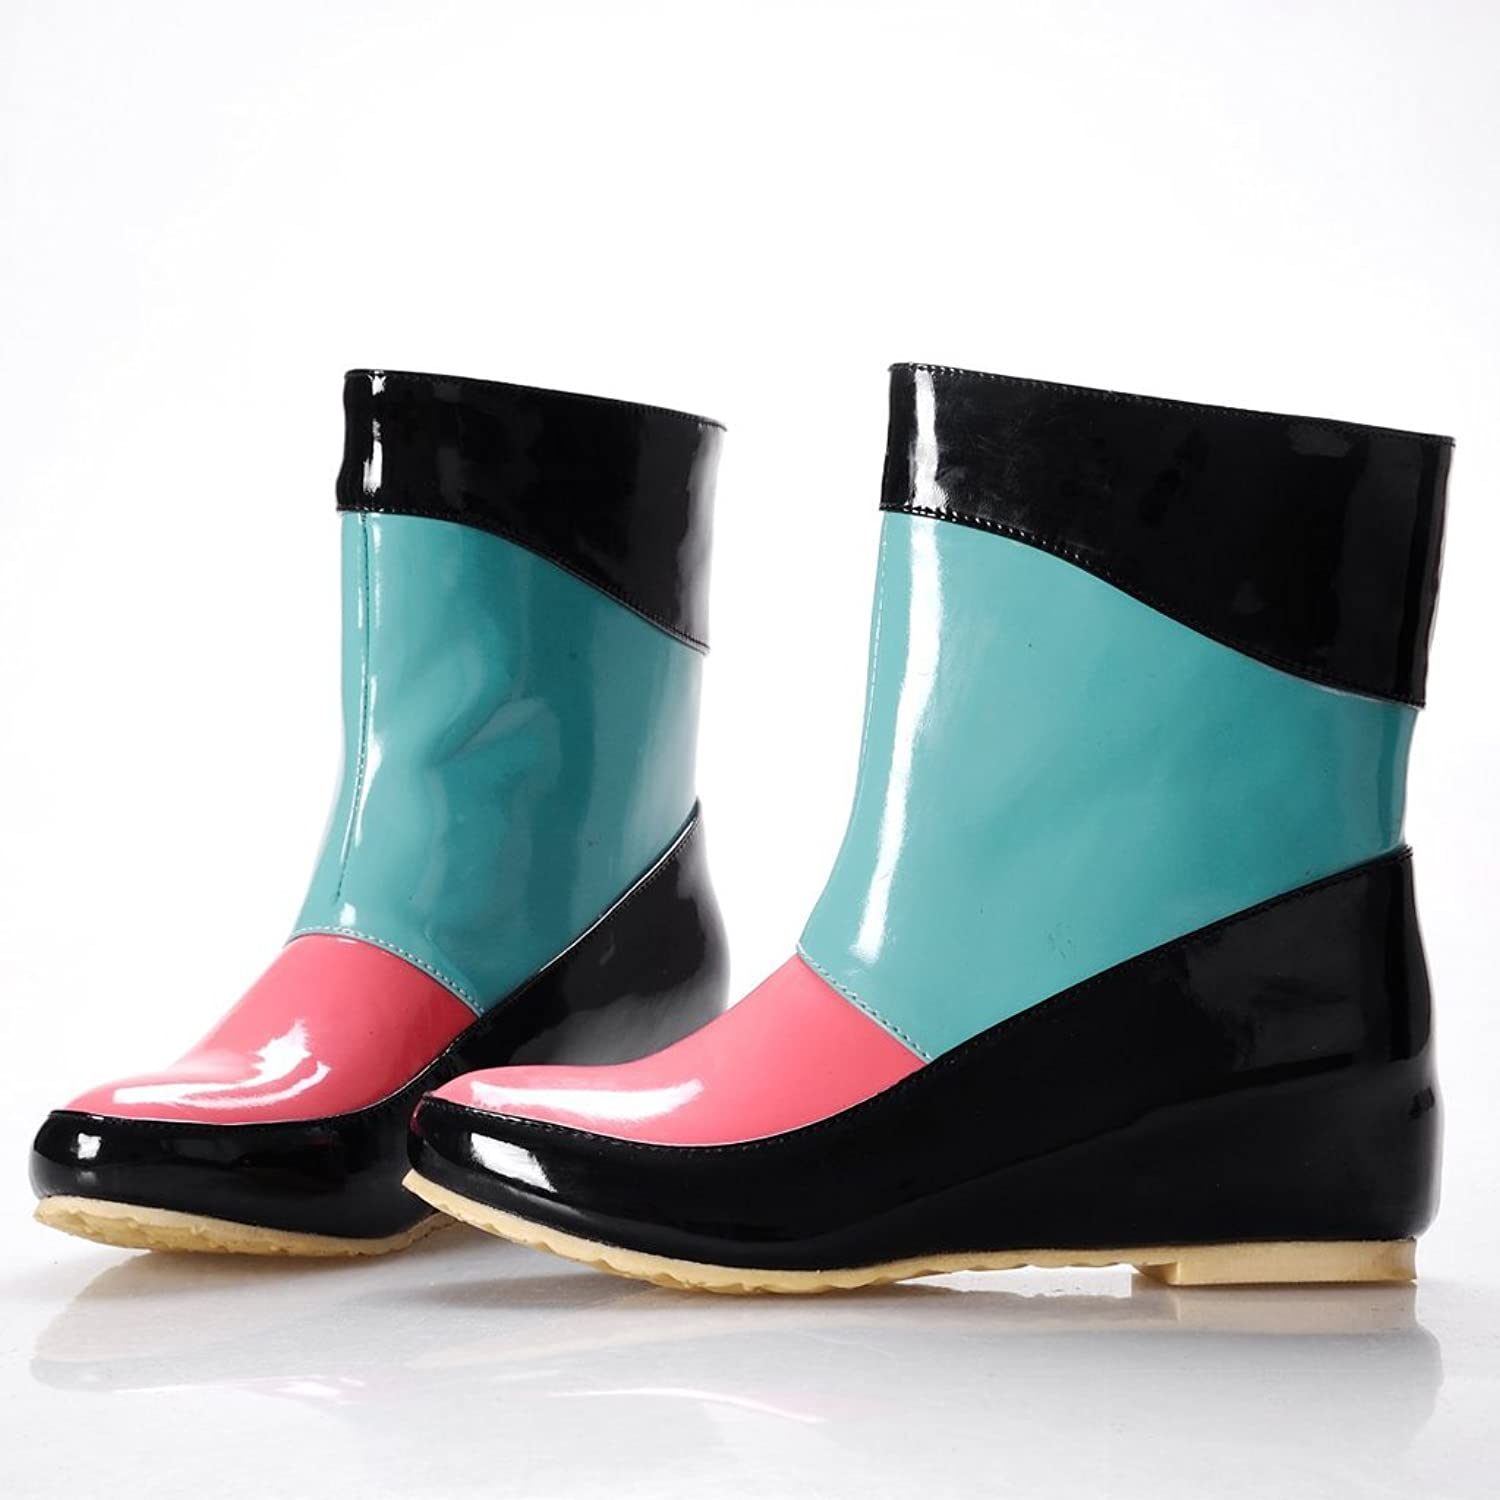 Retro Boots, Granny Boots, 70s Boots Susanny Lady Sweet Candy Color Slip Waterproof Rubber Transparent Snow Garden Rainboots $25.79 AT vintagedancer.com